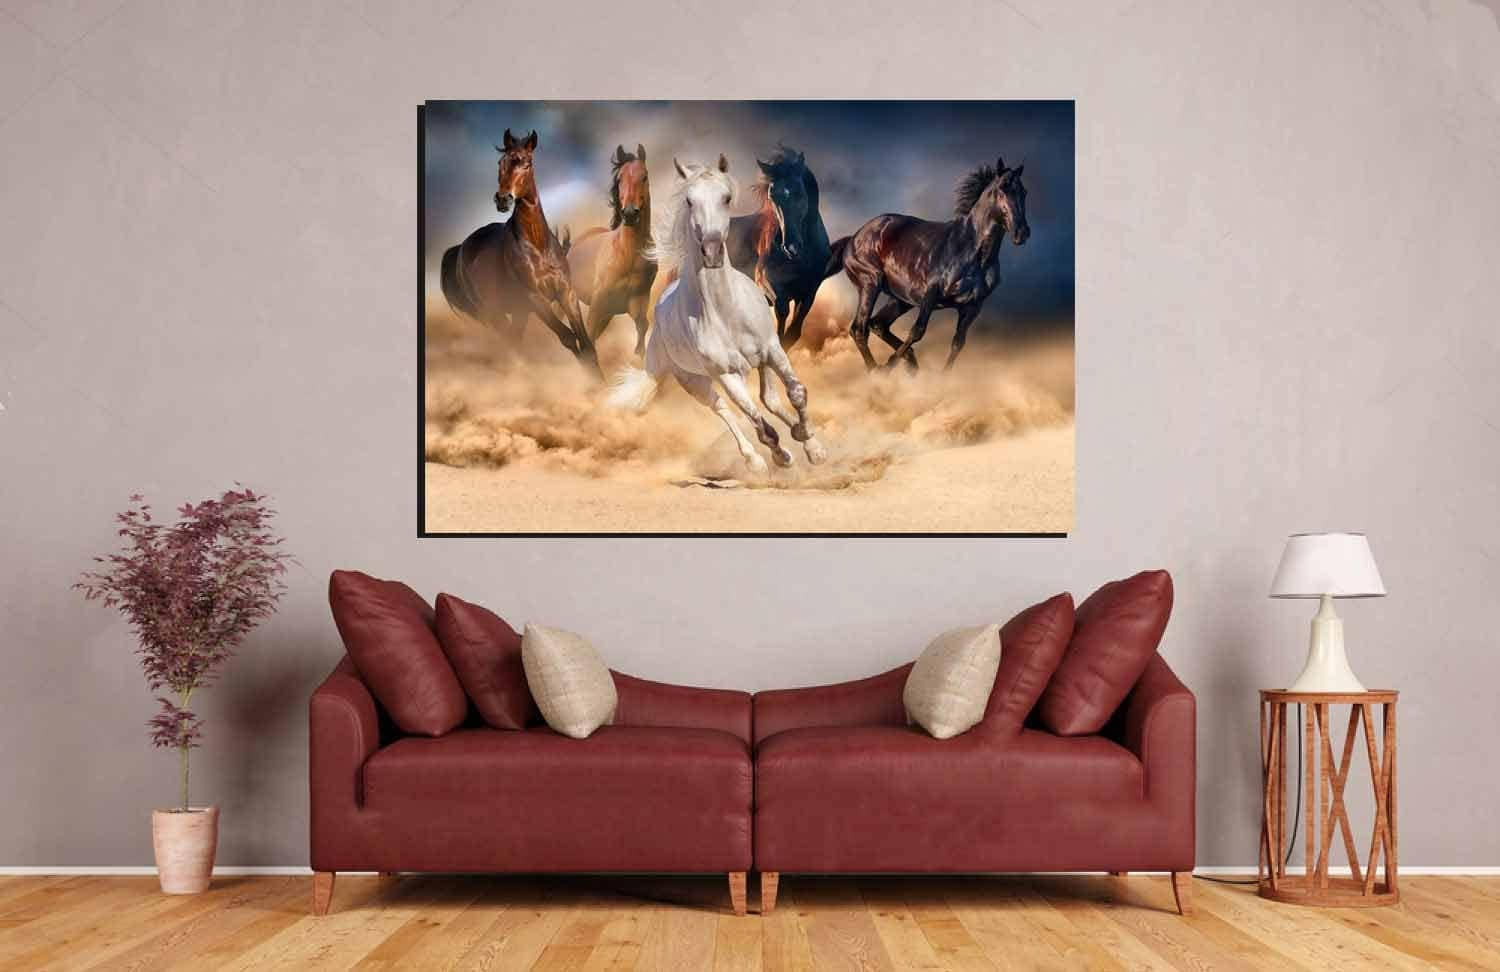 Horse,Running Horses,Running Horses Dusty,Living Room Art,Horses Wall Art,Horses  Art Print,Horses Canvas,Decorative Art Print,Wall Art Decor